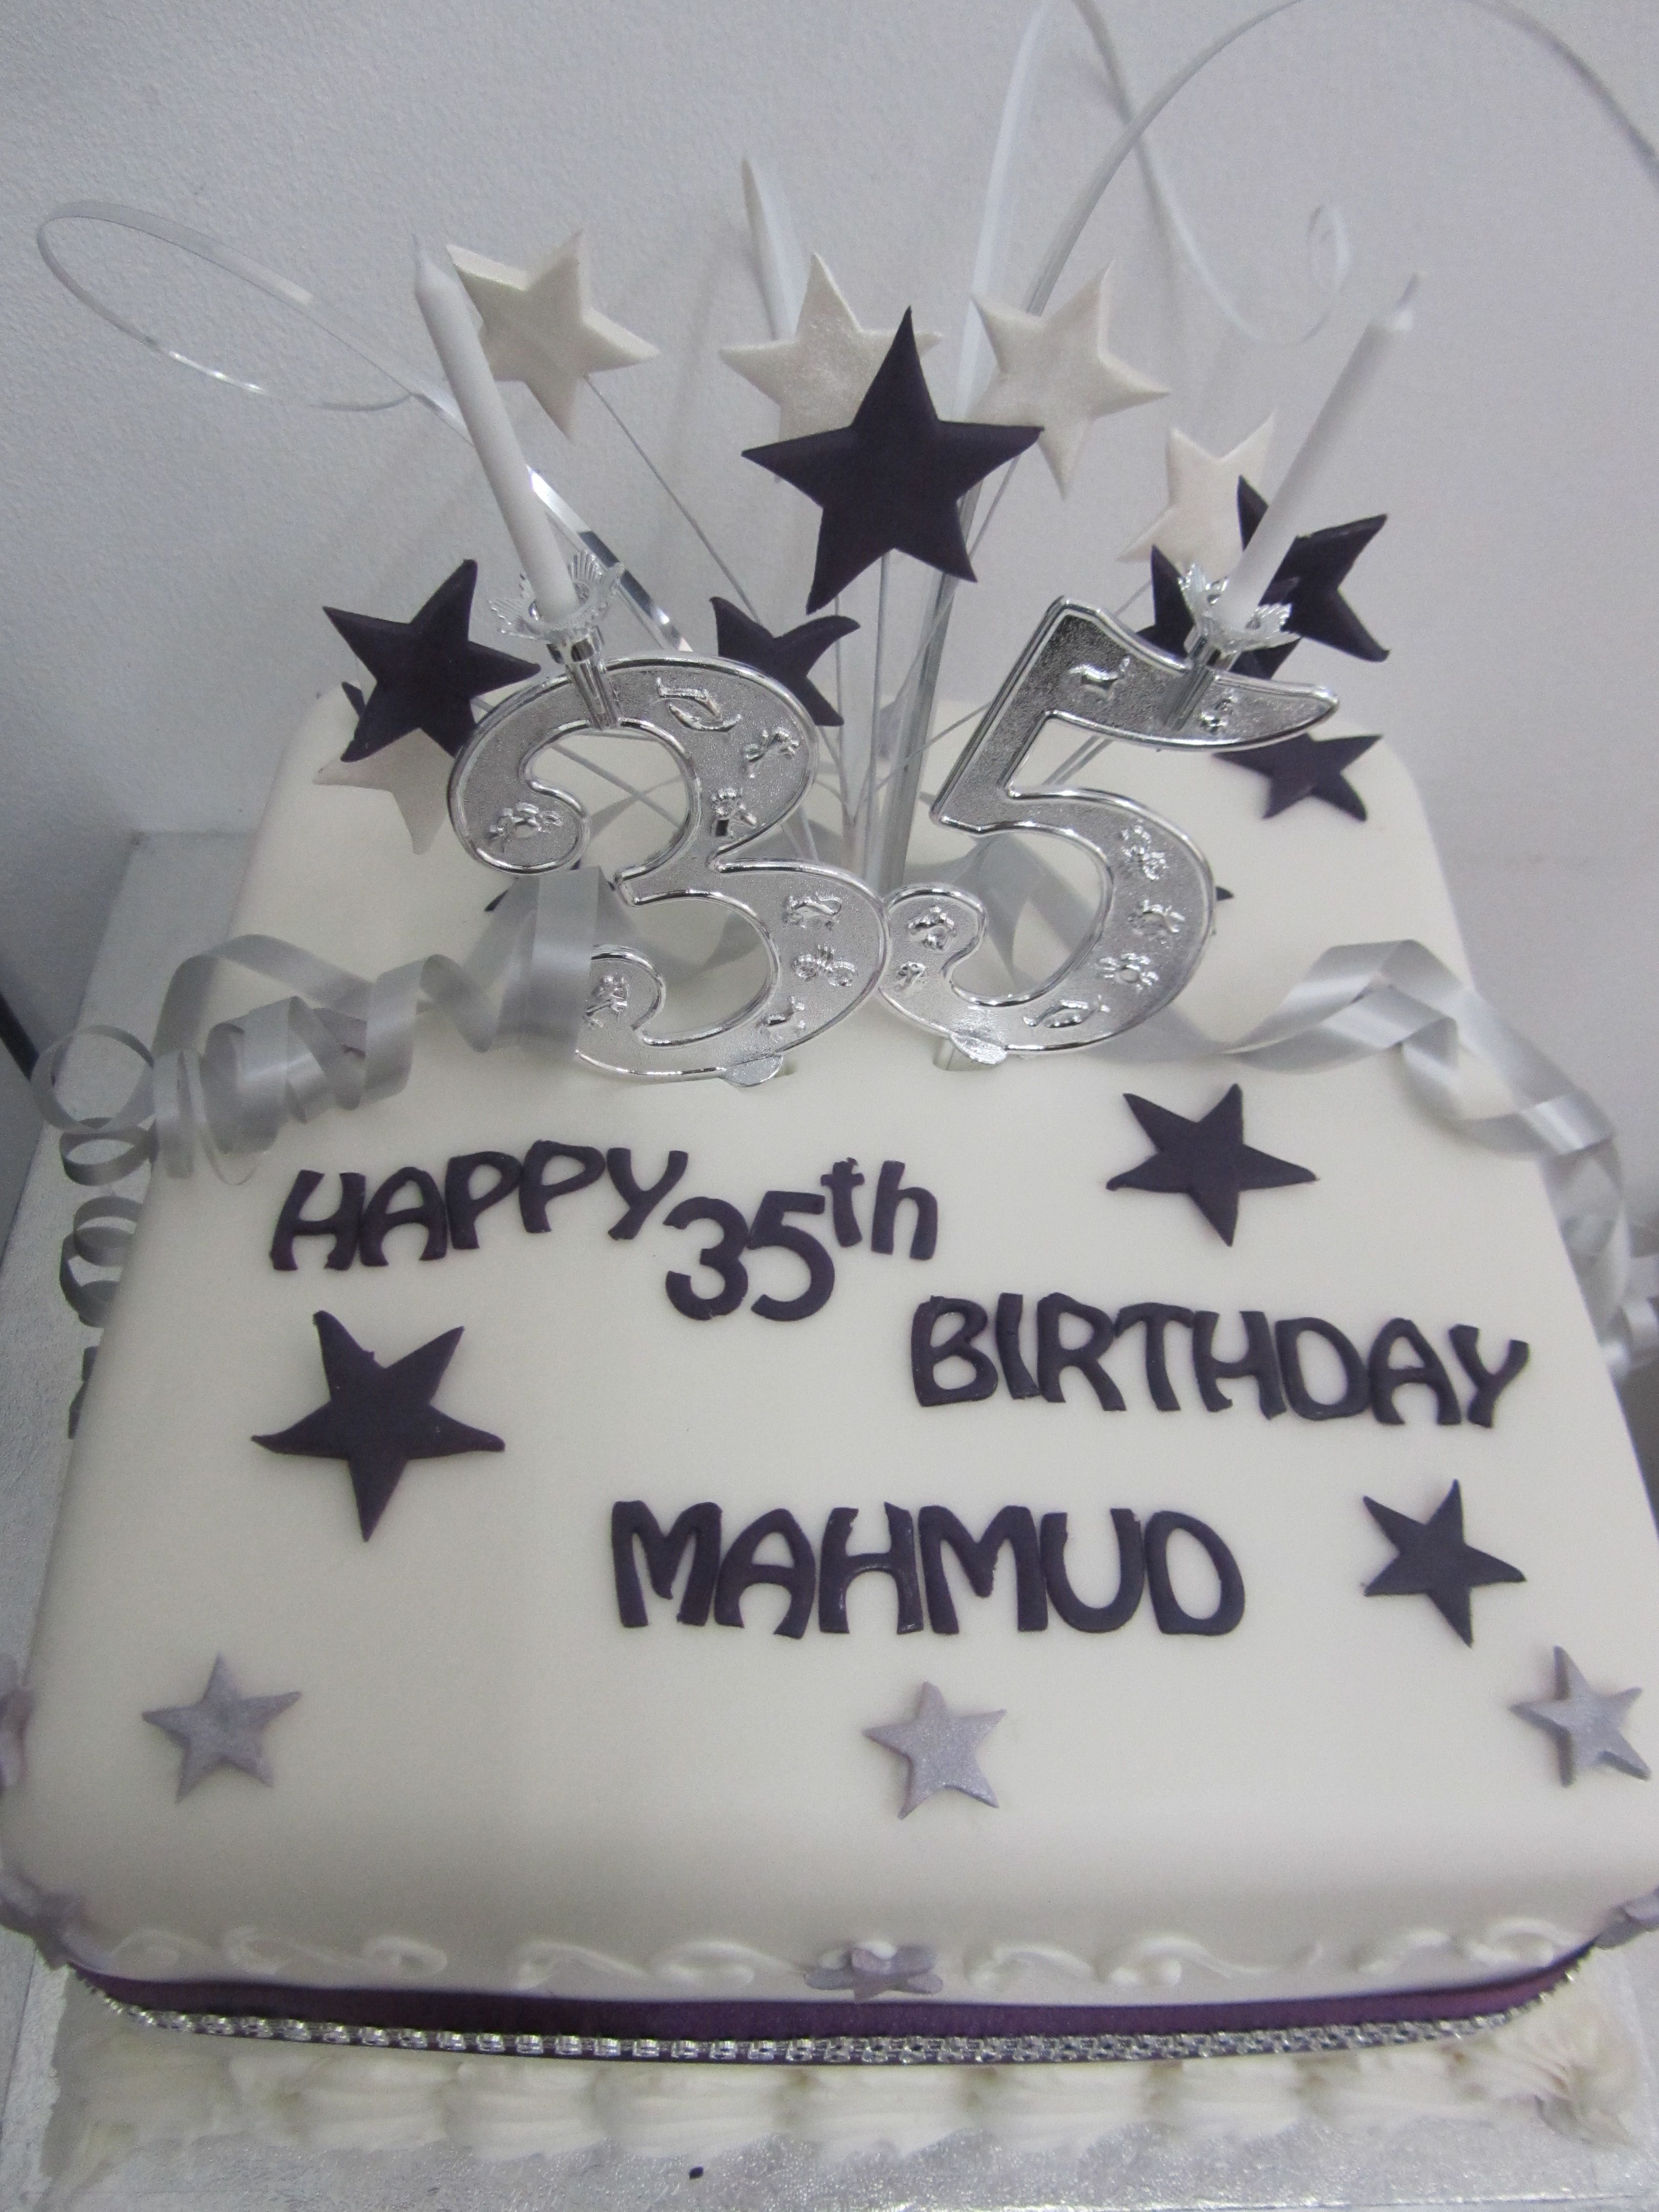 Mahums 35th Birthday Cake Adult Male Cakes Pinterest Cake